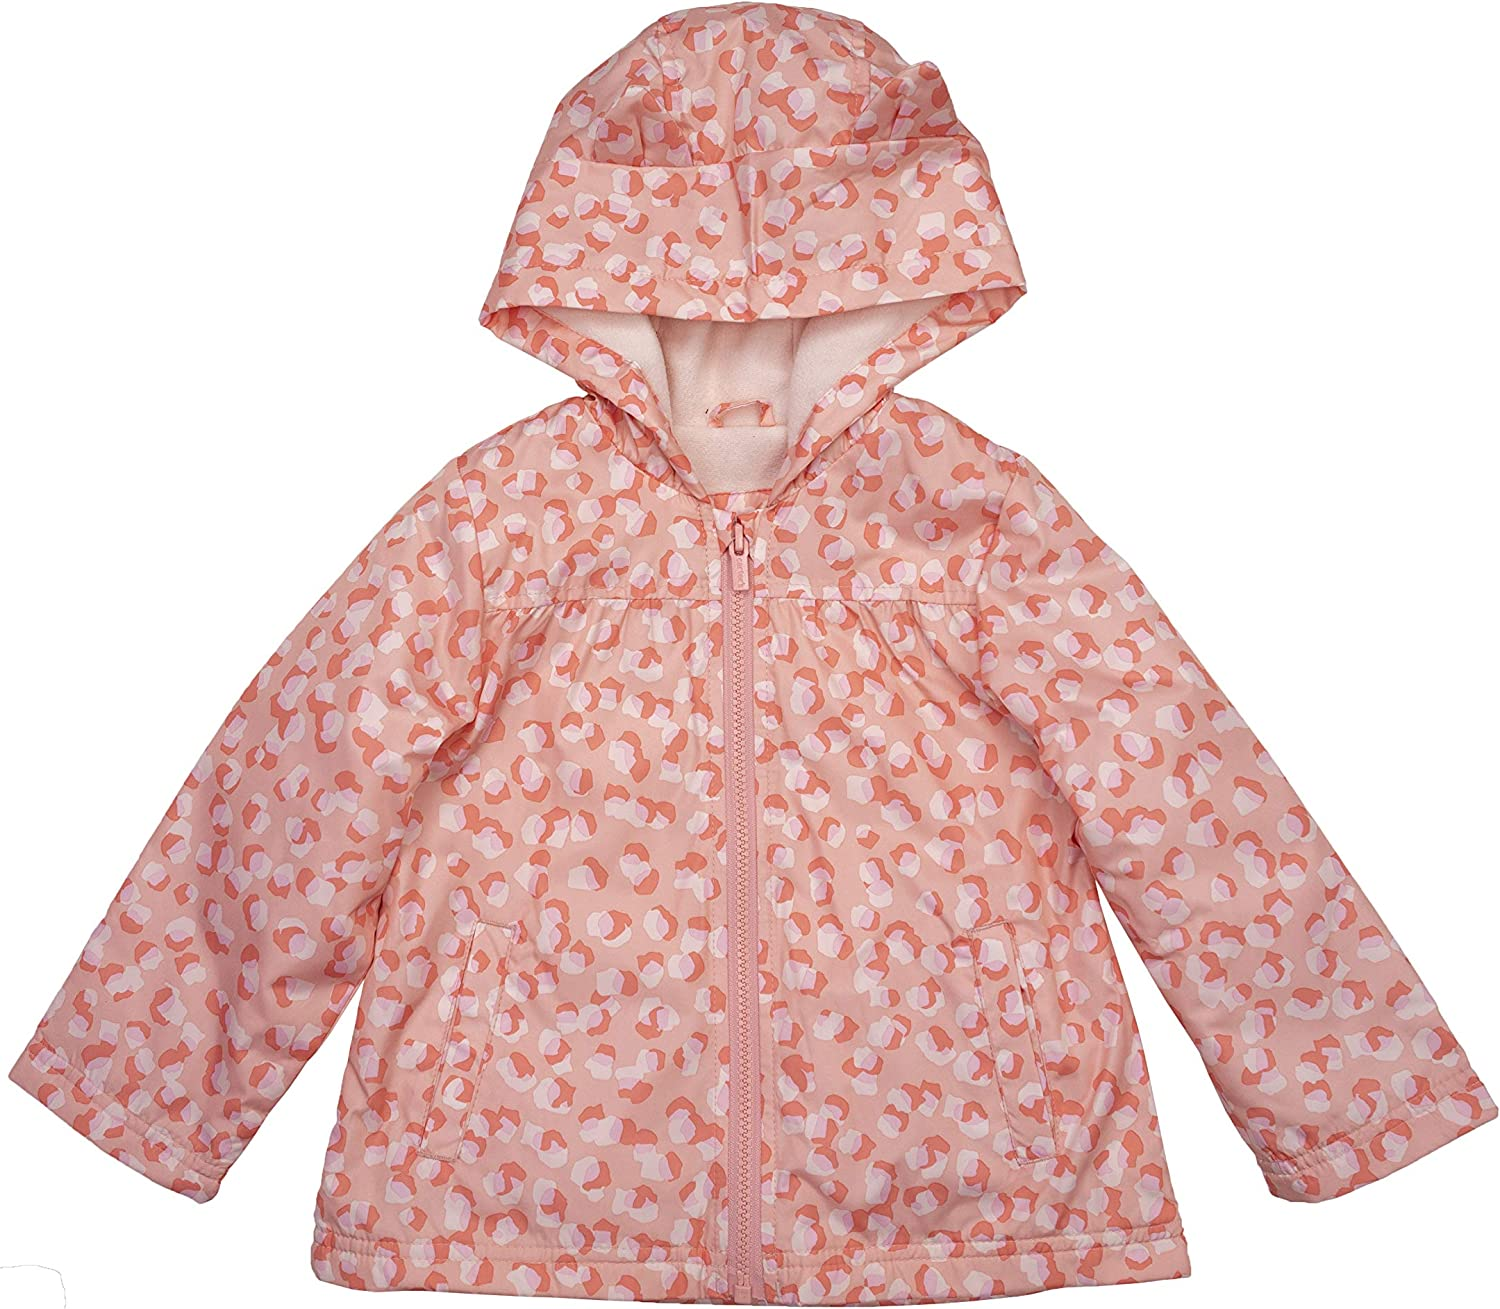 Carter's Baby Girls' Luxury Dealing full price reduction Jacket Midweight Fleece-Lined